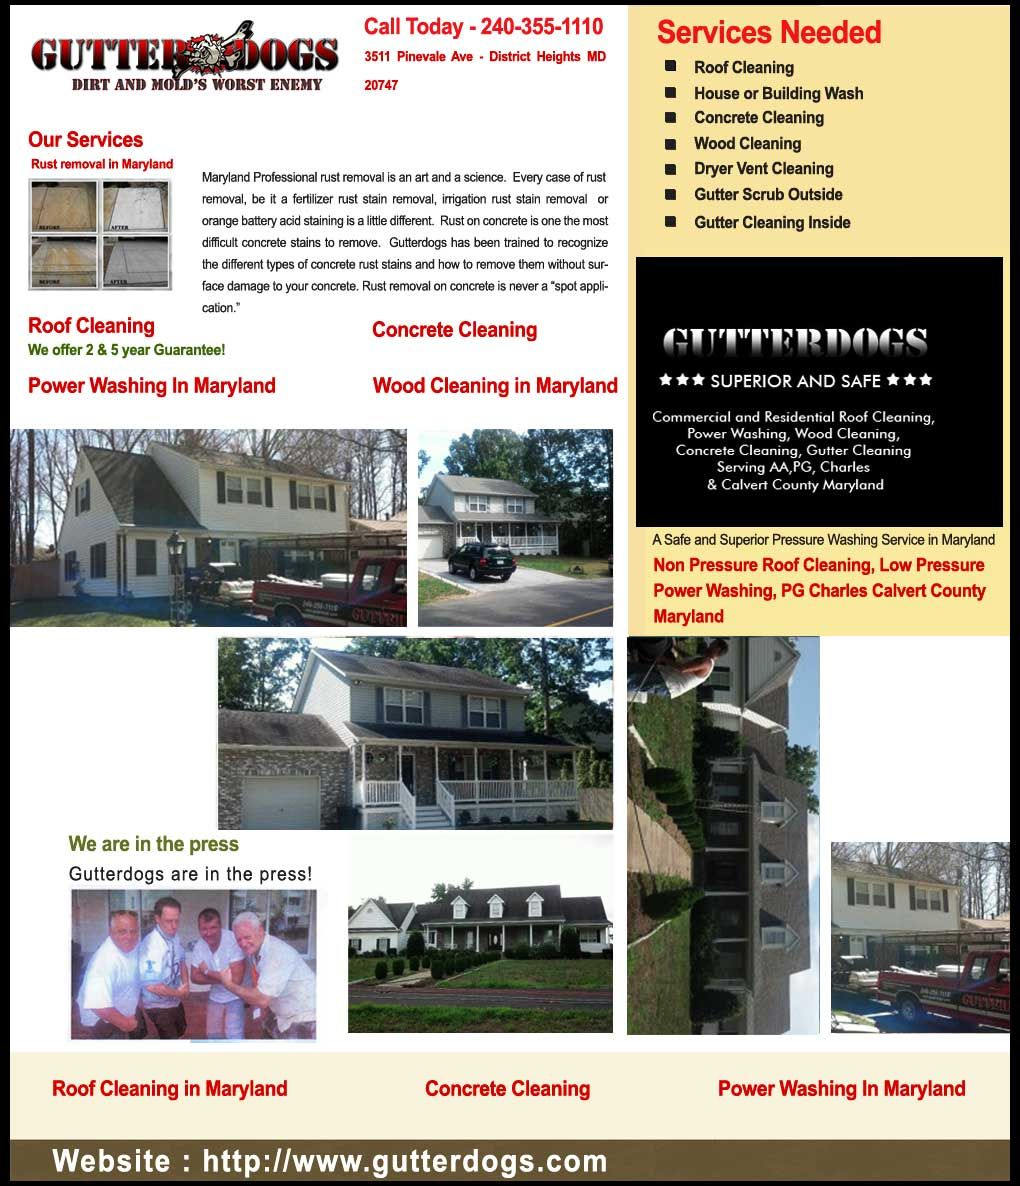 Gutterdogs is a locally owned and operated exterior